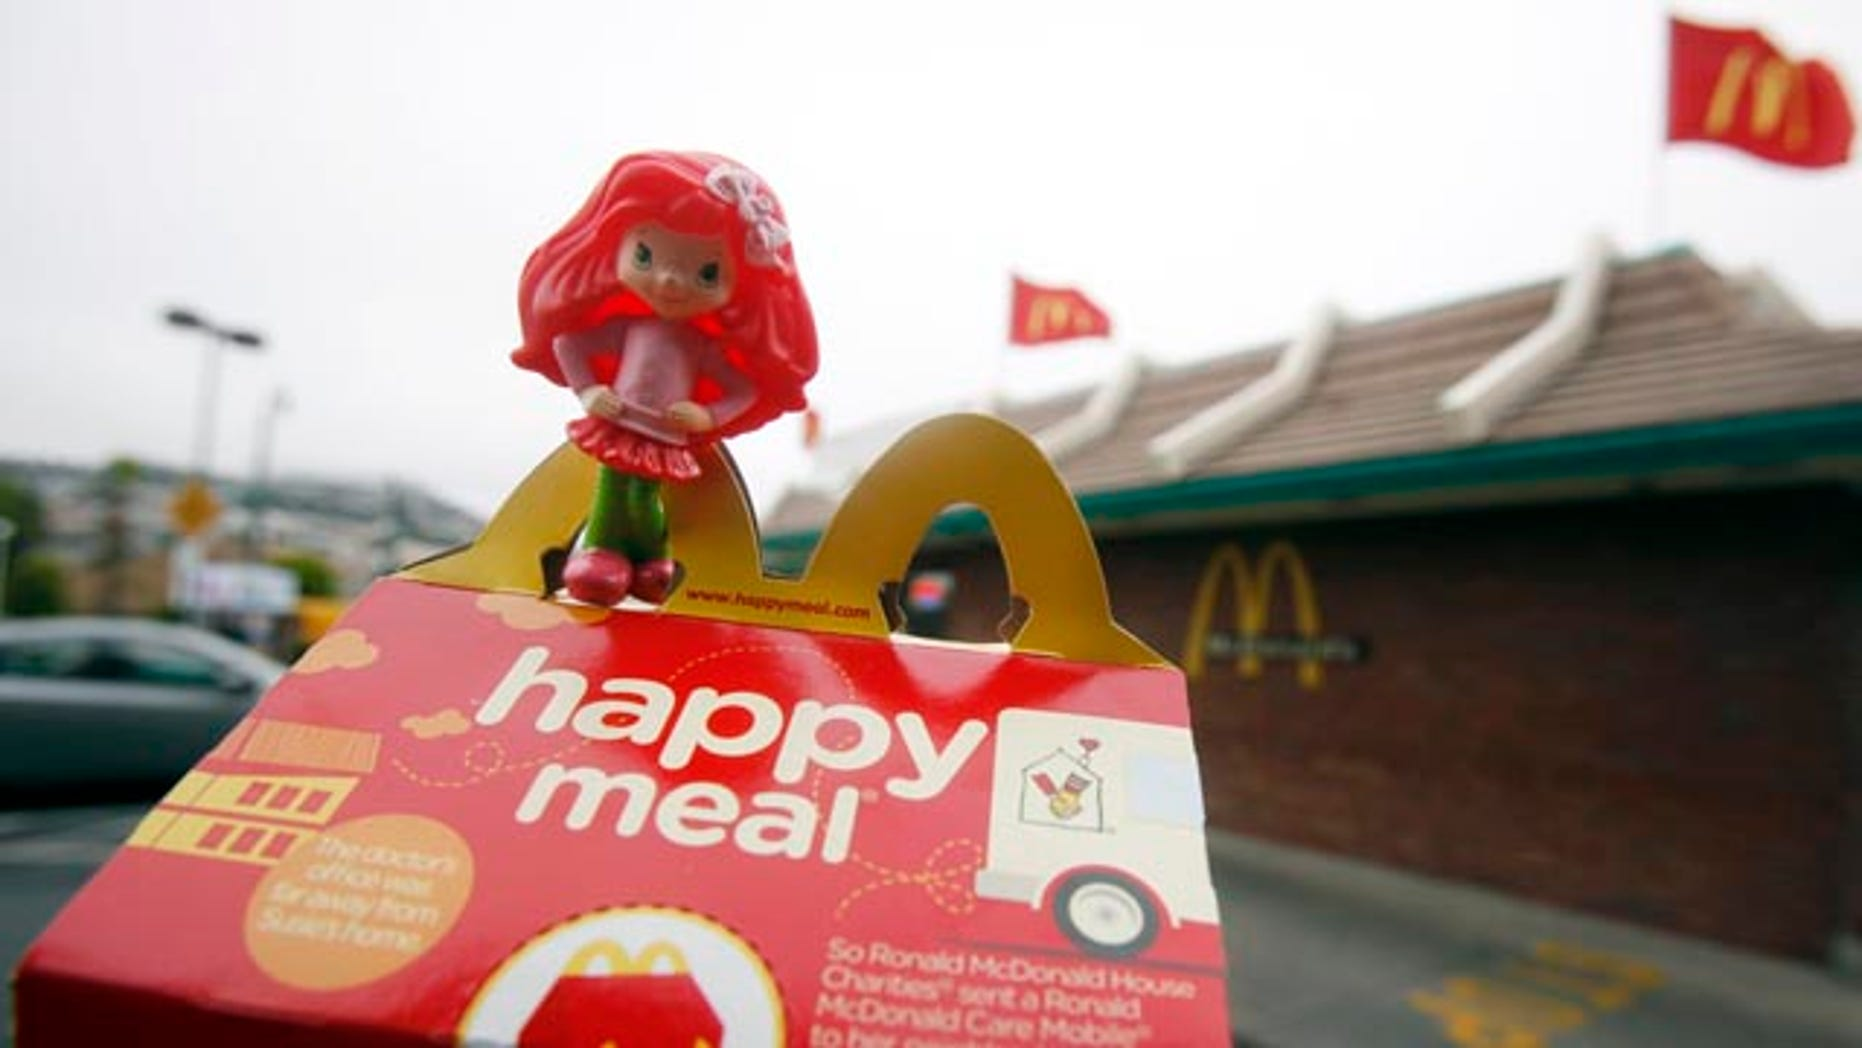 A Happy Meal box and toy are shown outside of a McDonald's restaurant in San Francisco. San Francisco has become the first major American city to prohibit fast-food restaurants from including toys with children's meals that do not meet nutritional guidelines.